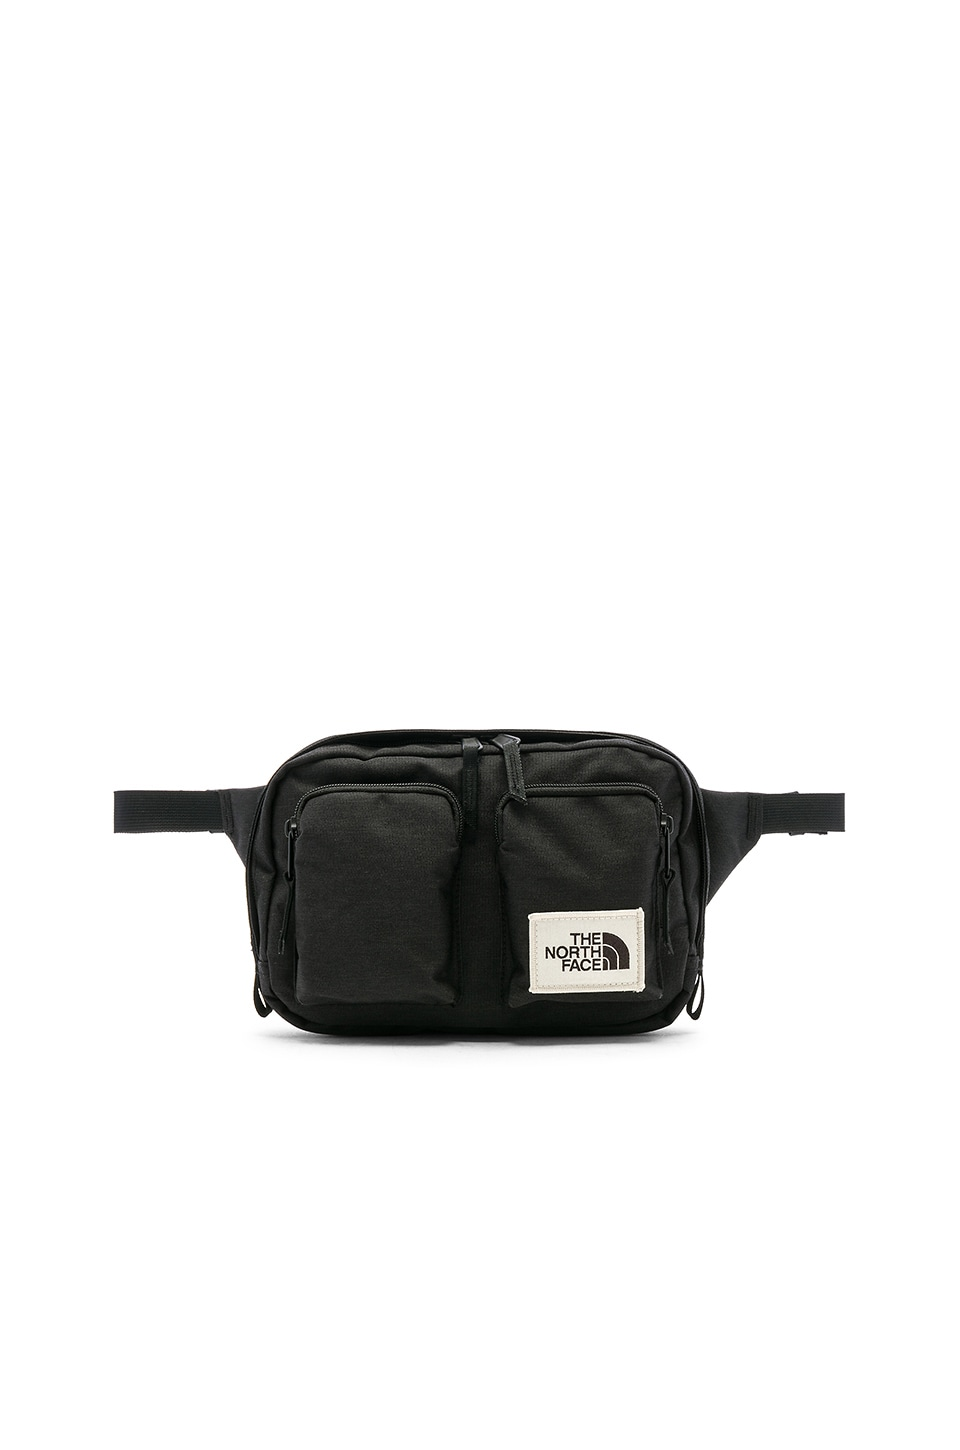 The North Face Kanga Bag in TNF Black Heather